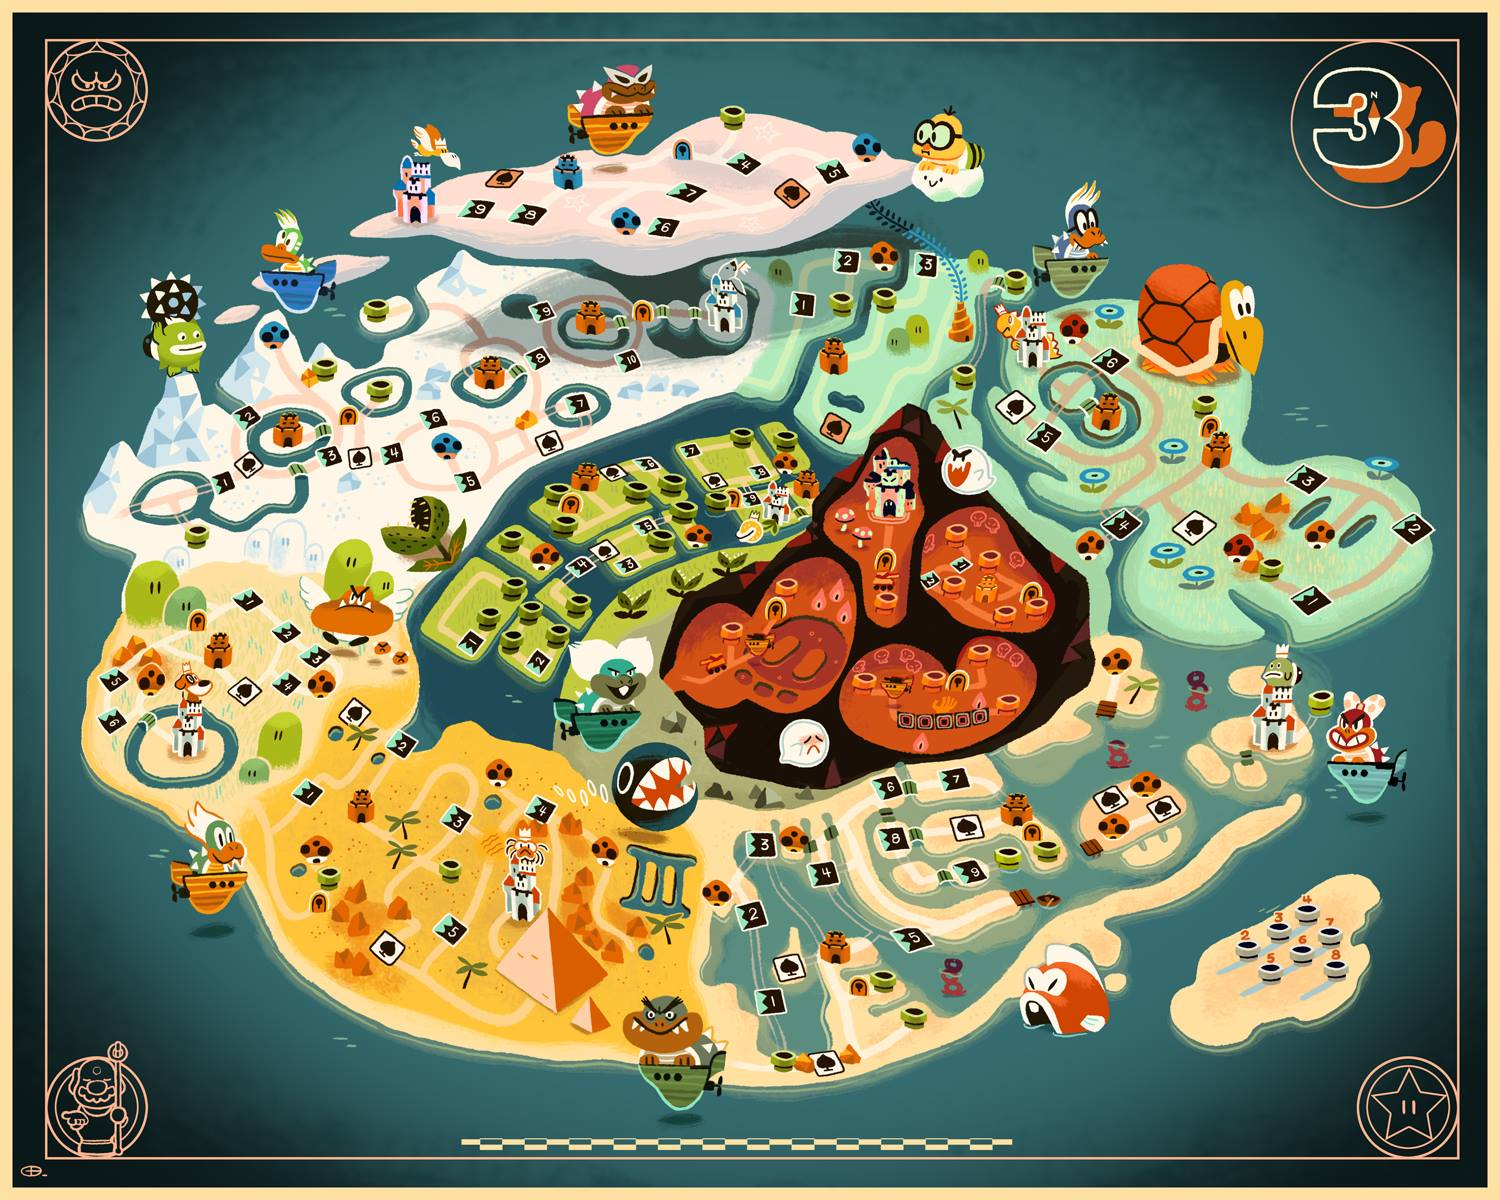 Mario 3 World Map.Things To Do In Los Angeles Mario 3 Map Art